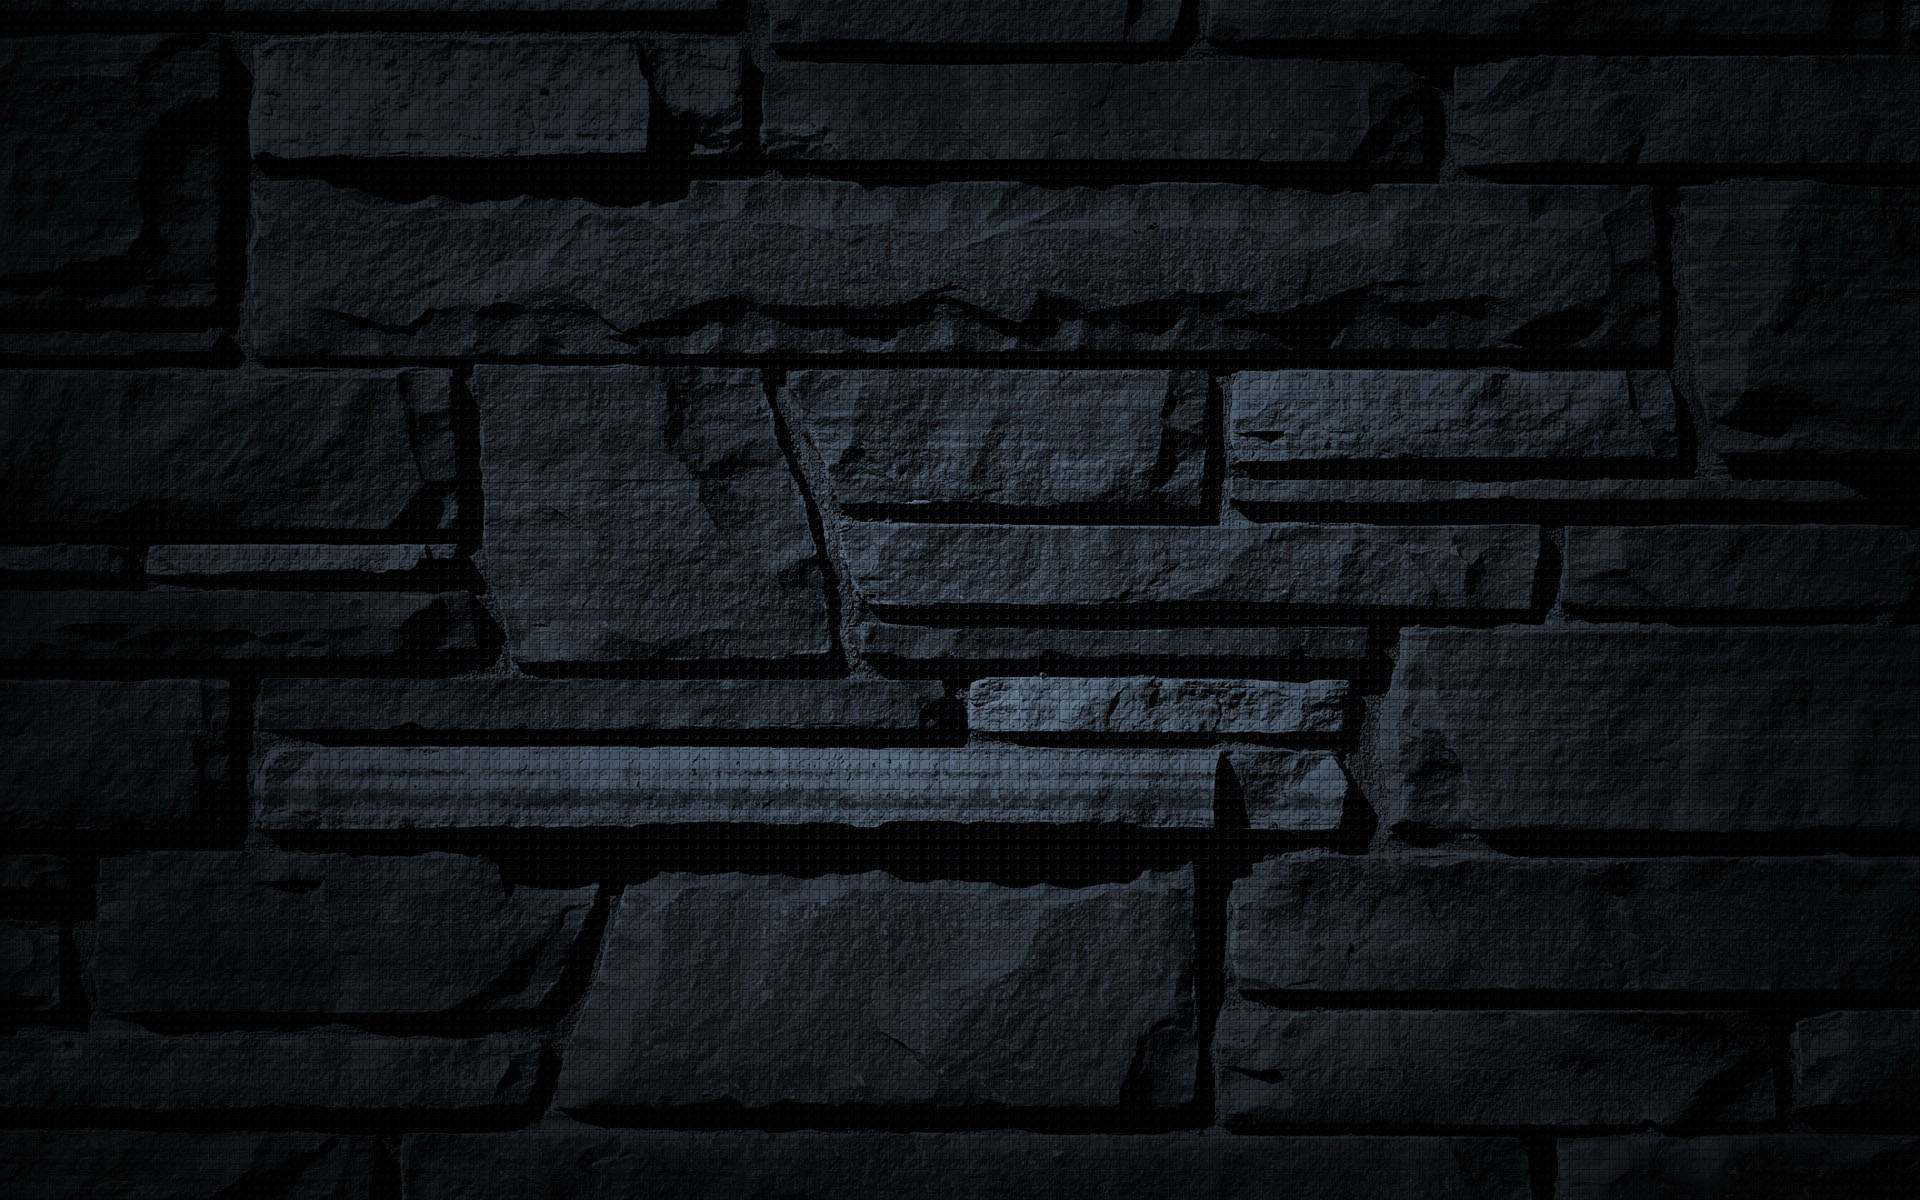 50 black wallpaper in fhd for free download for android desktop and laptops - Wall wallpaper designs ...